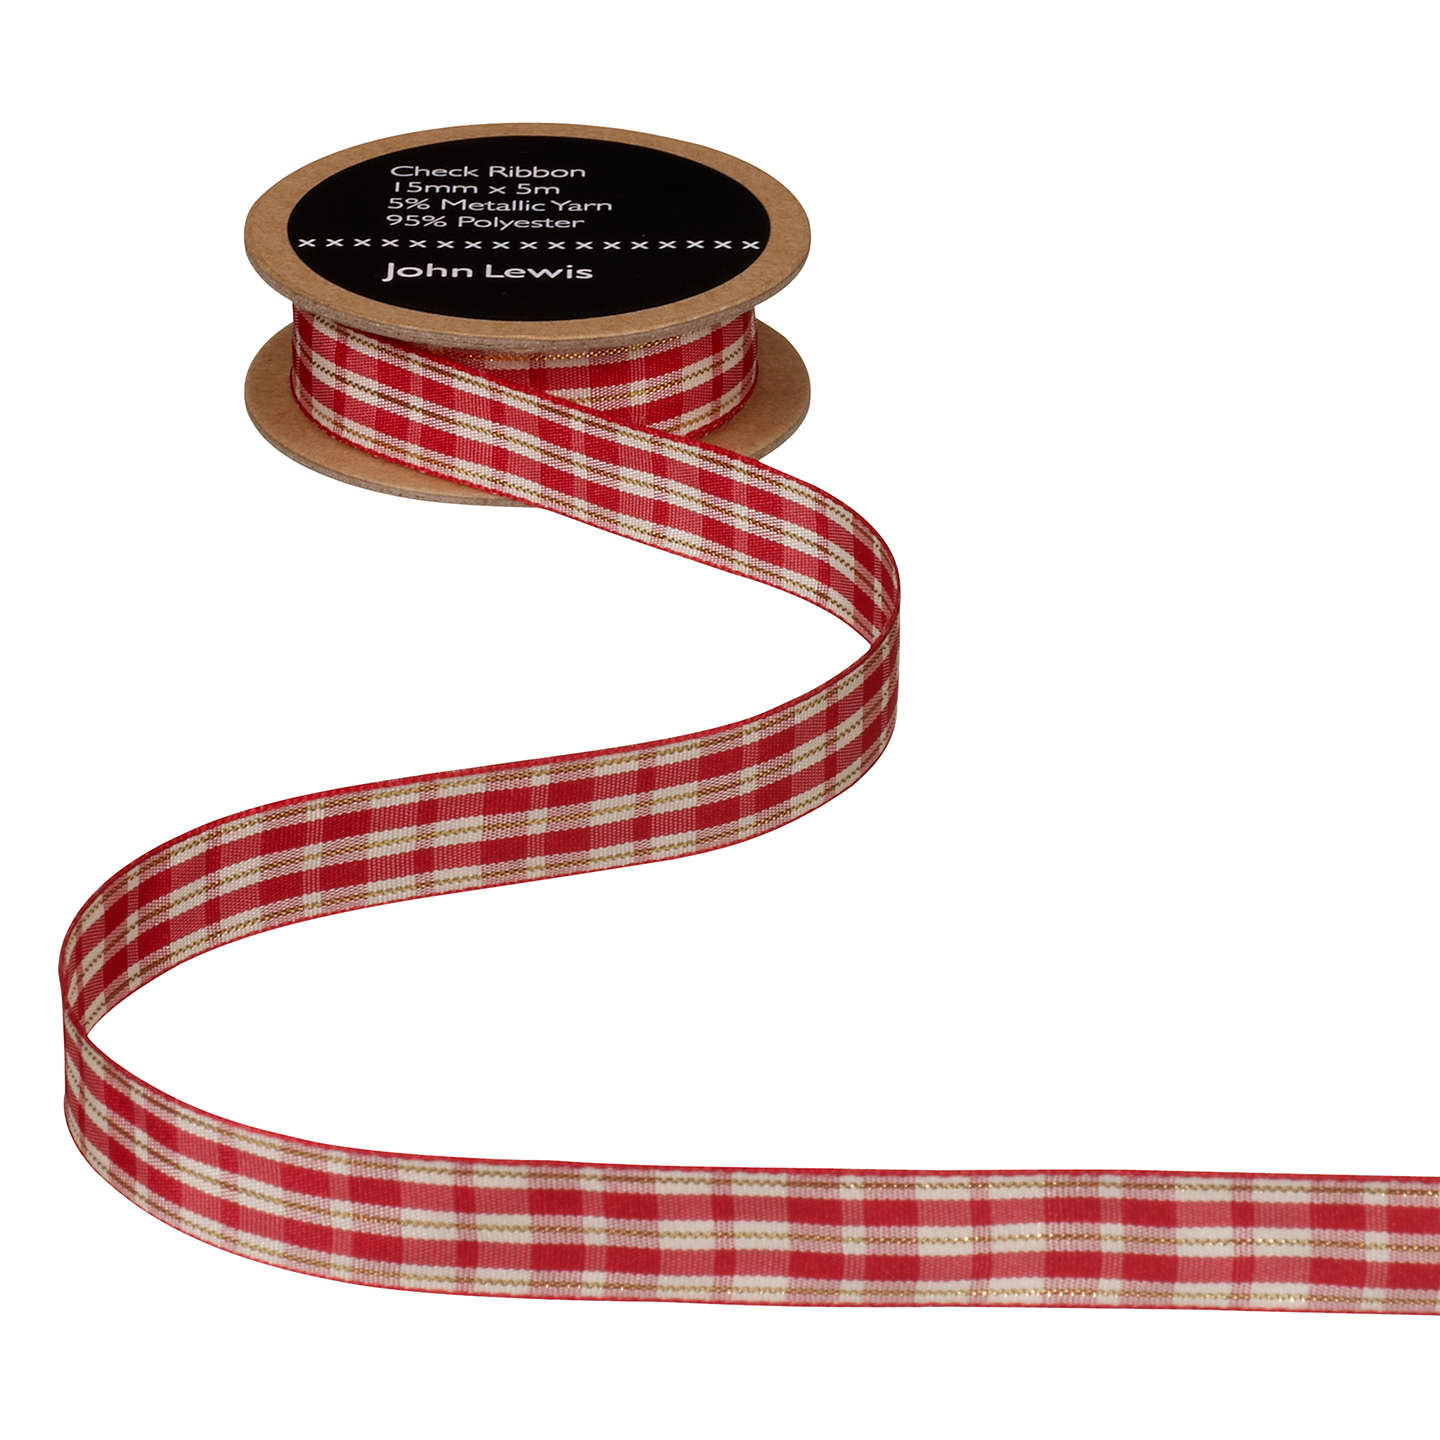 BuyJohn Lewis Check Ribbon, Red/Cream, 5m, 15mm Online at johnlewis.com